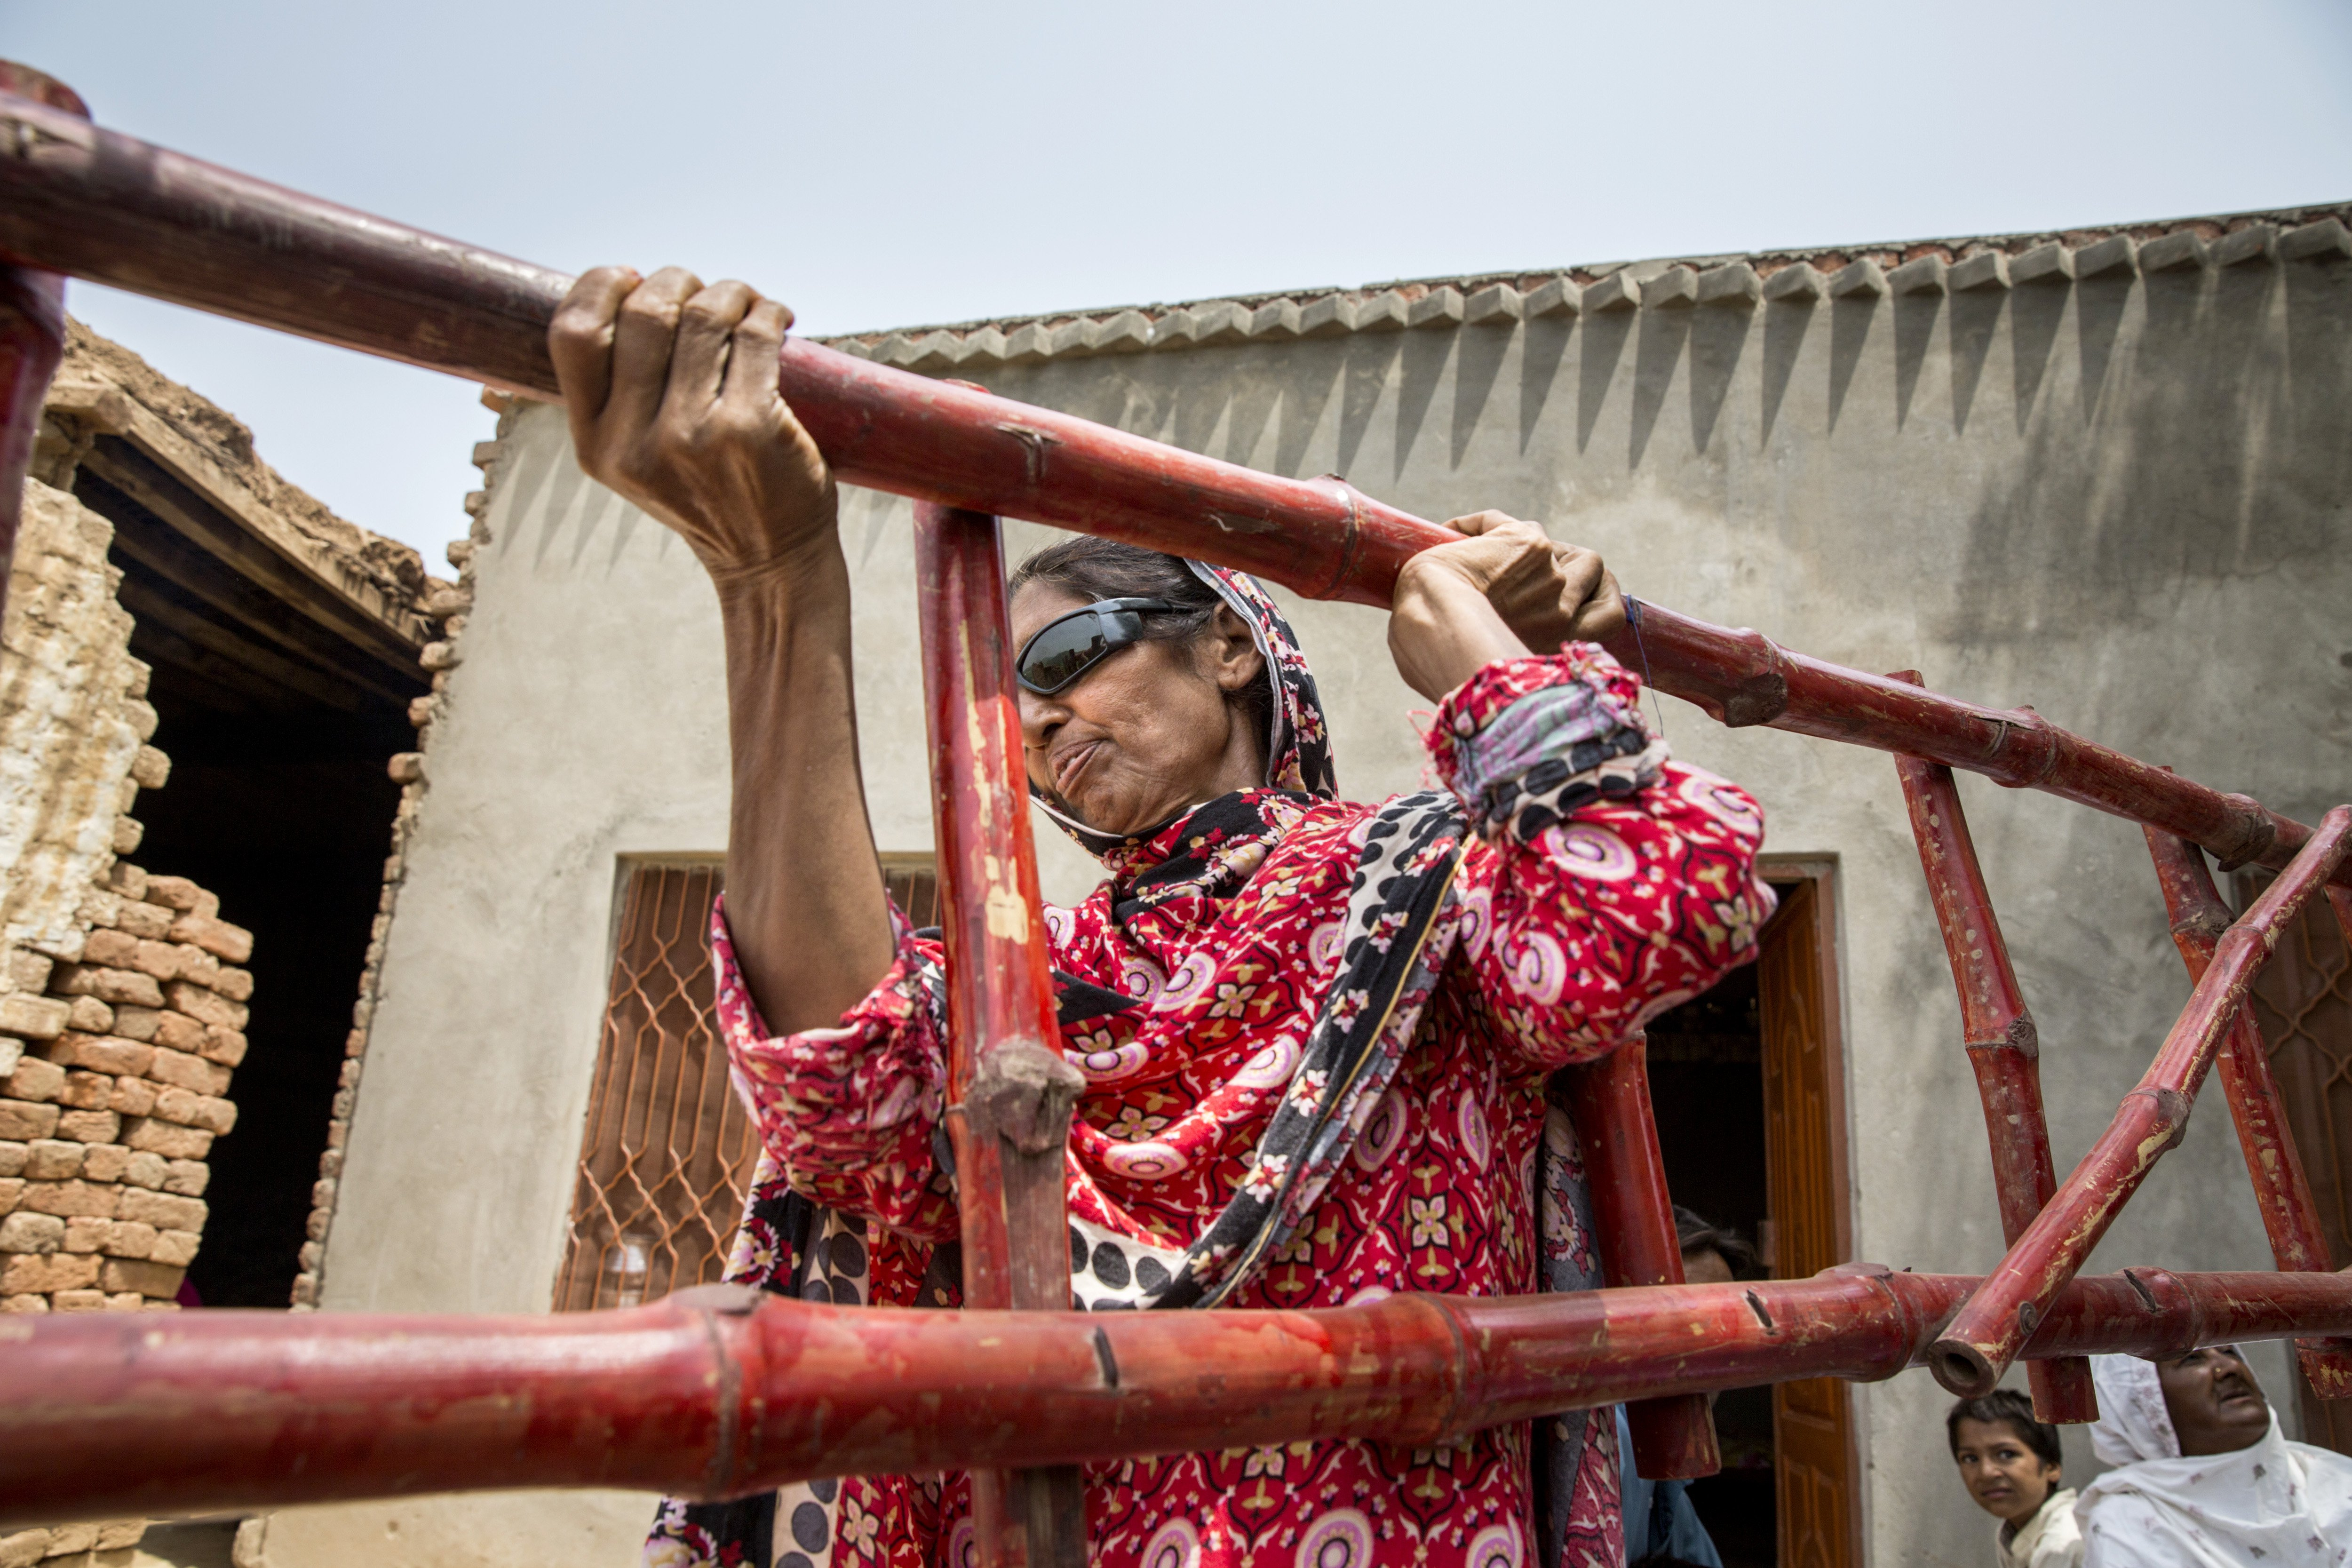 Kausar Shaheen lifts a ladder at her home in Manhiala, Chakwal District, Pakistan